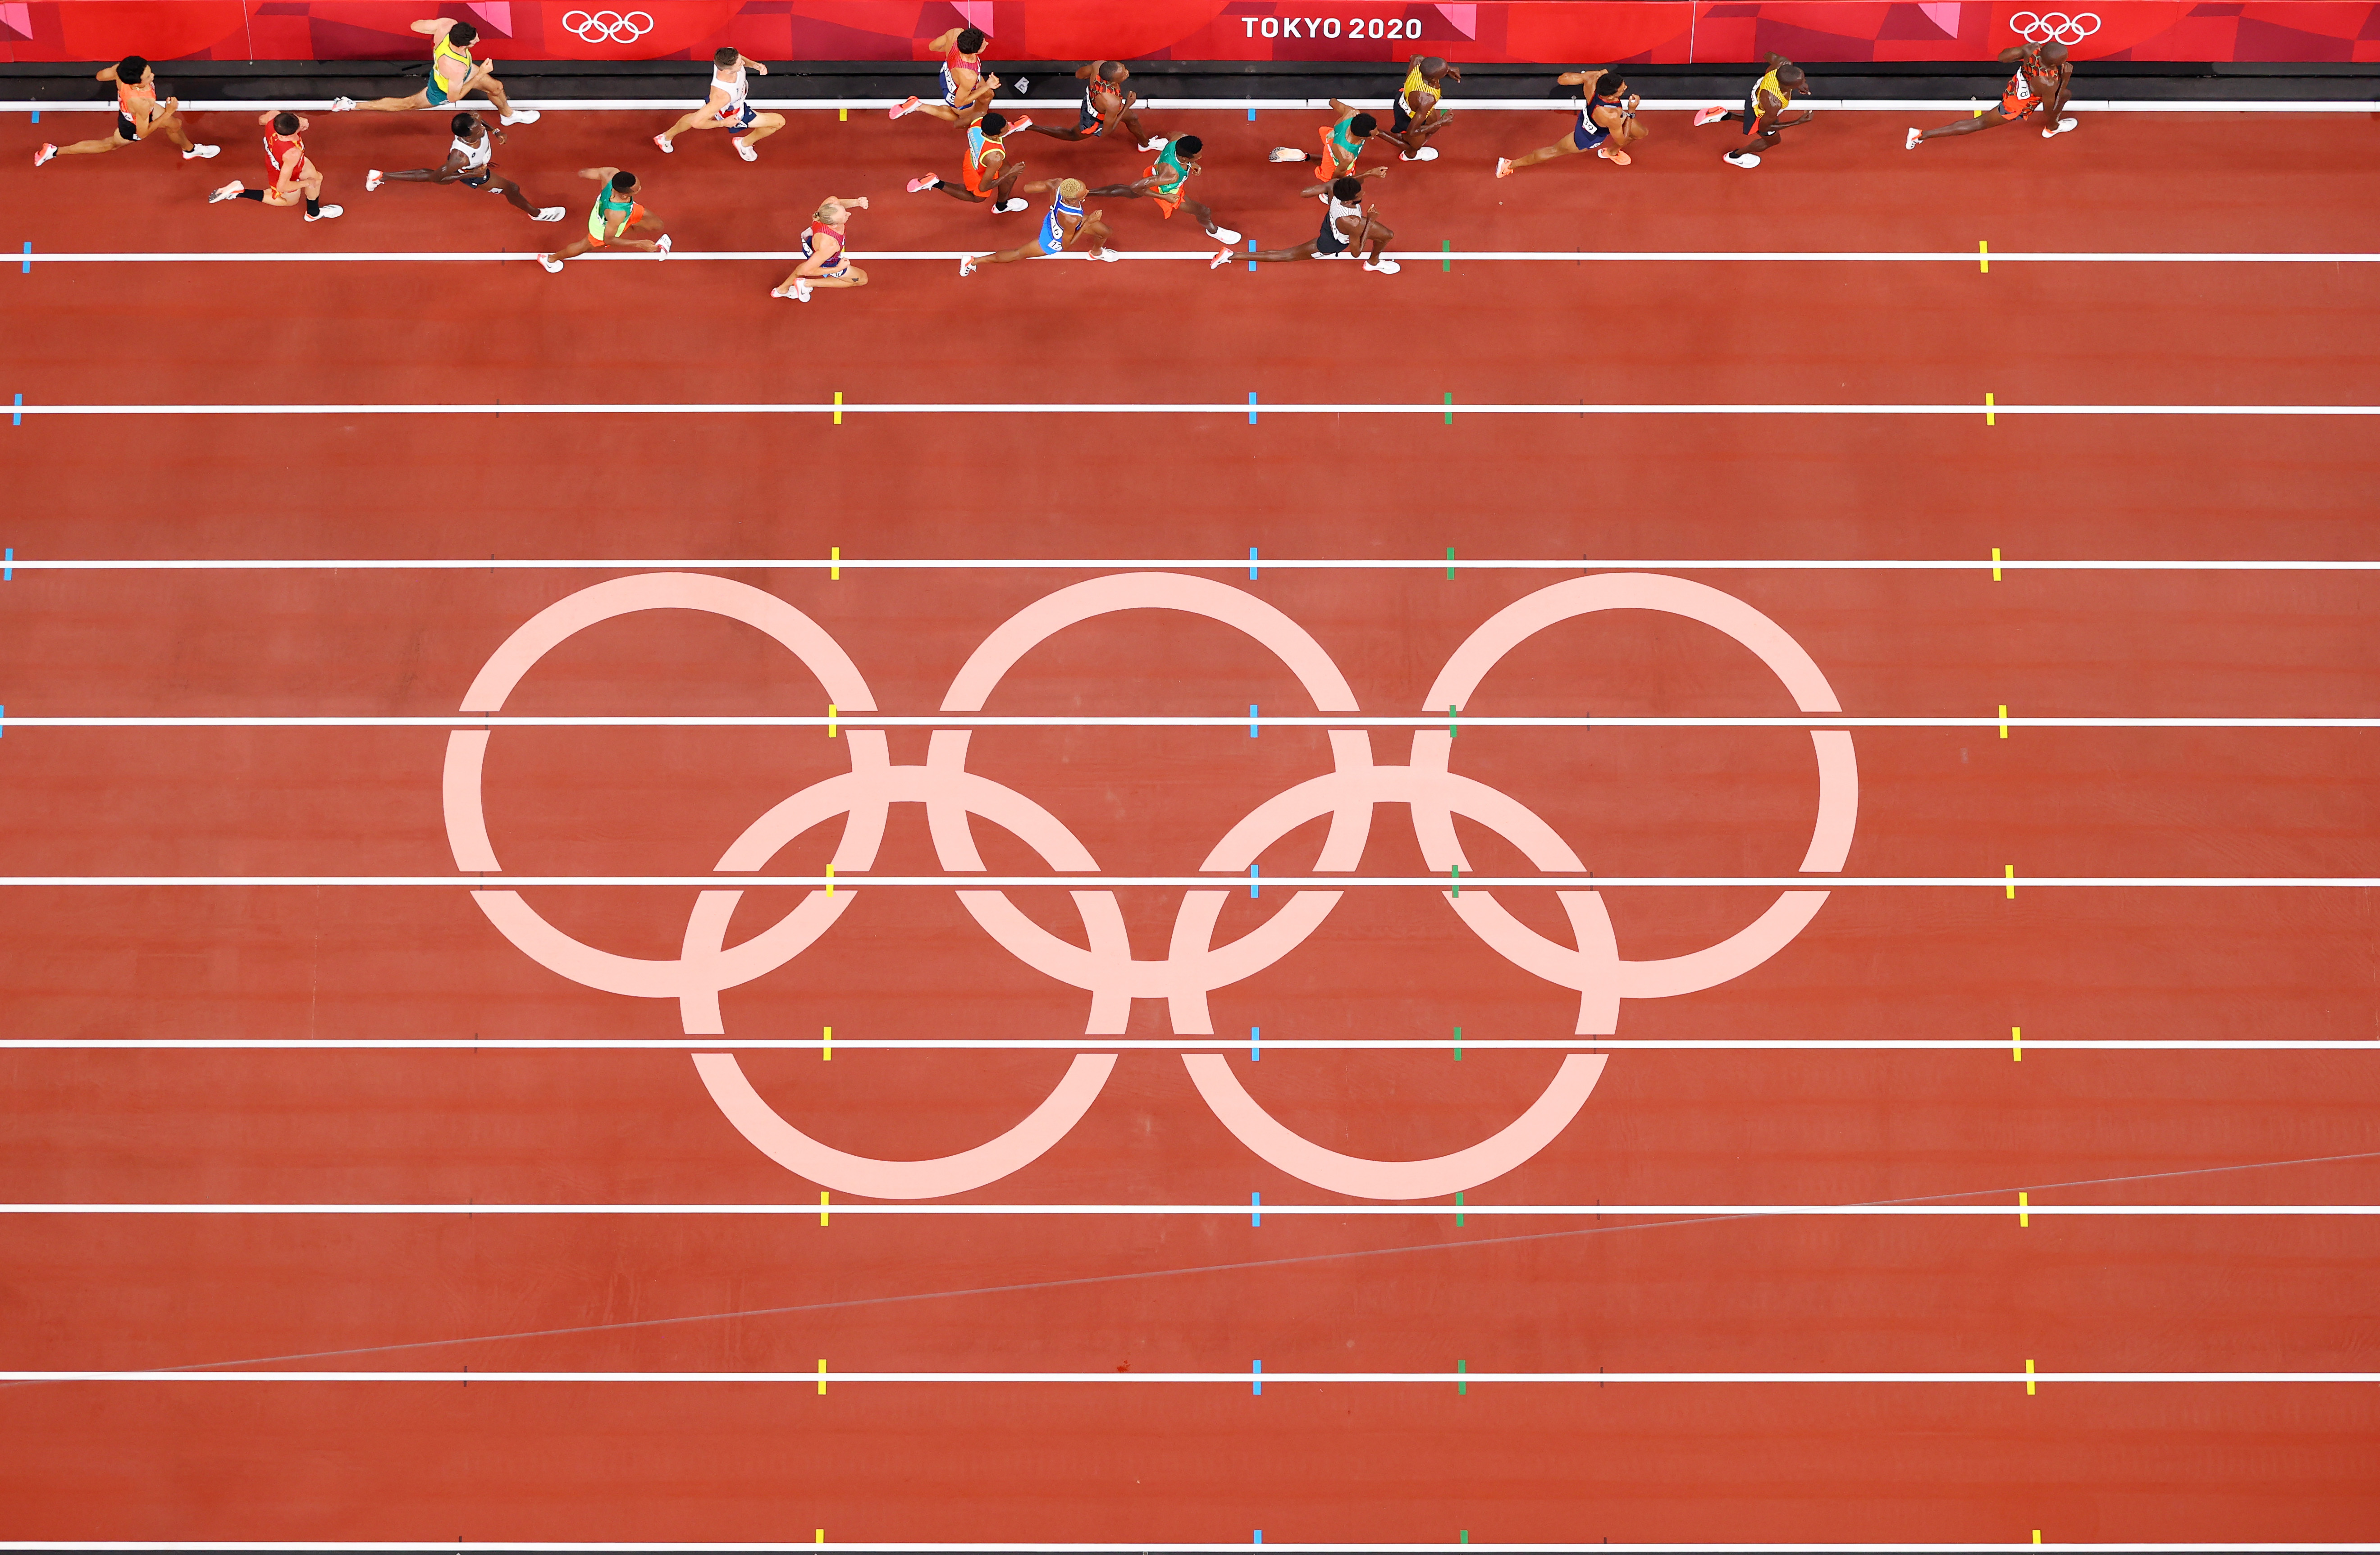 The Olympic rings on a track and field track seen from high above, with competitors running in the inside lane.